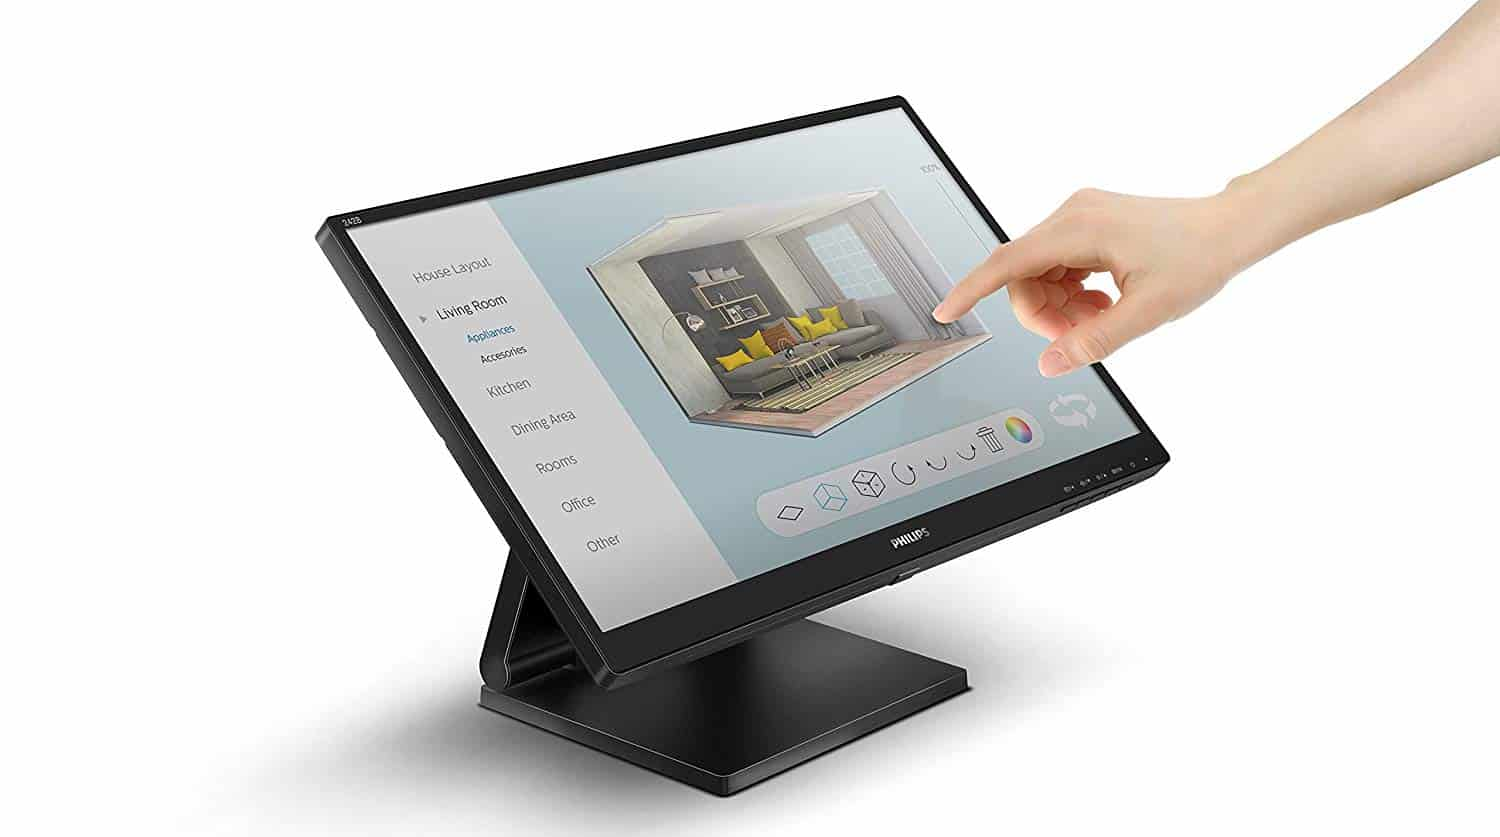 Philips launches 242B9T 24-inch 1080p touch screen monitor, priced at $270